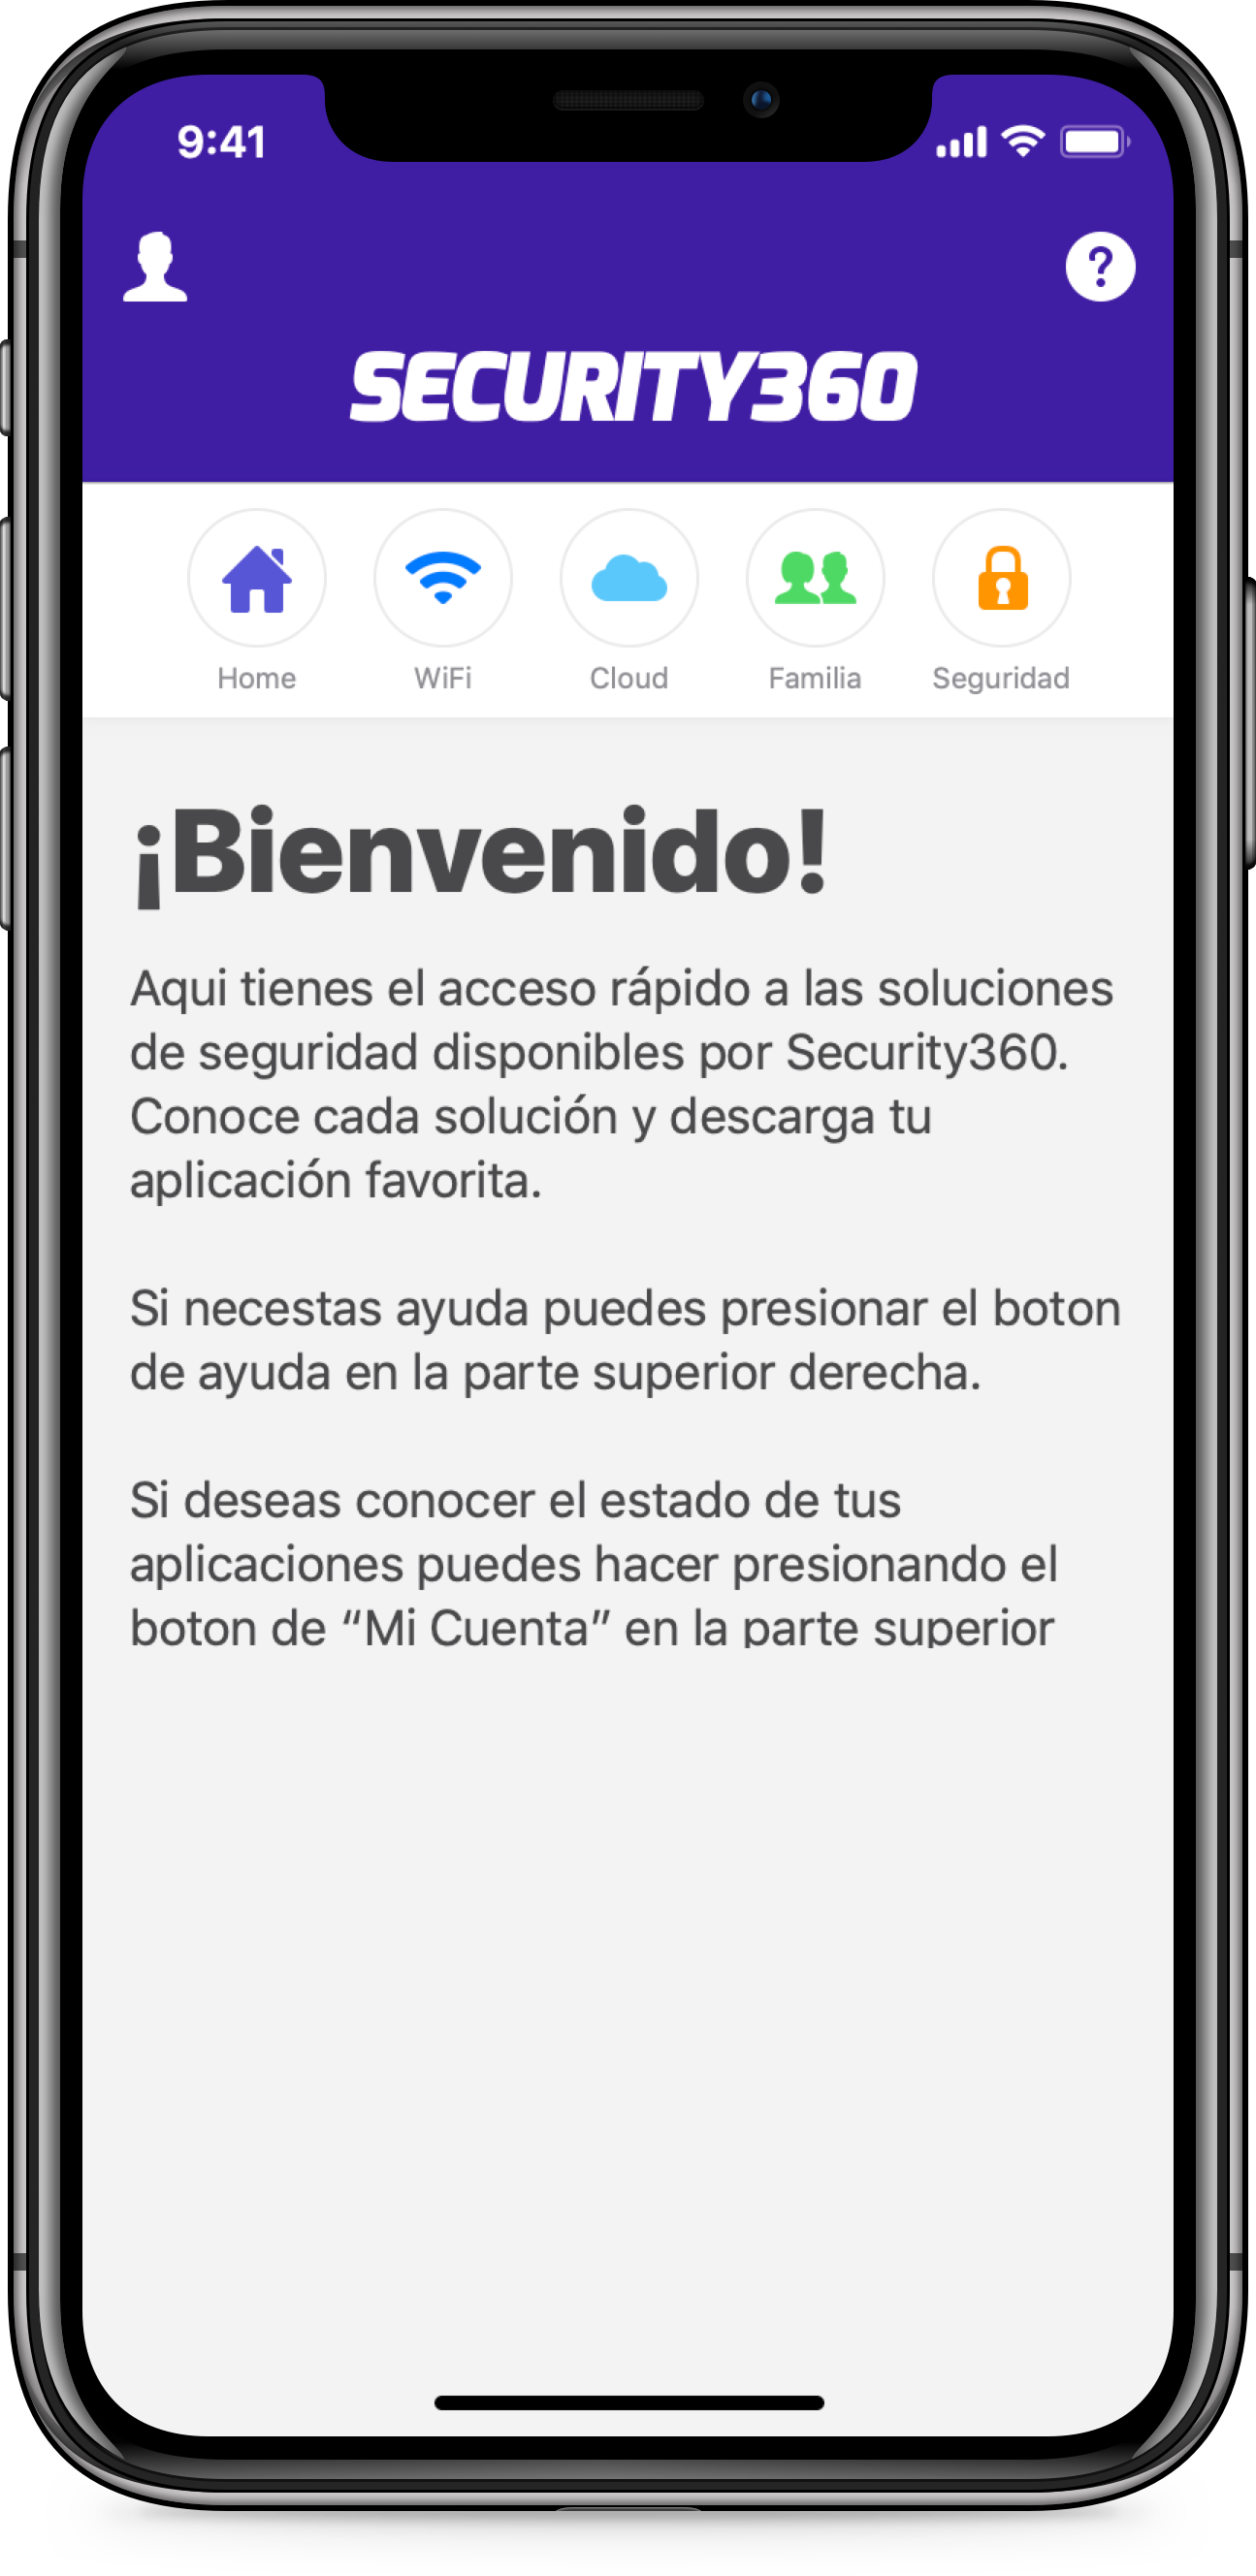 Seguridad360 — Mobile App